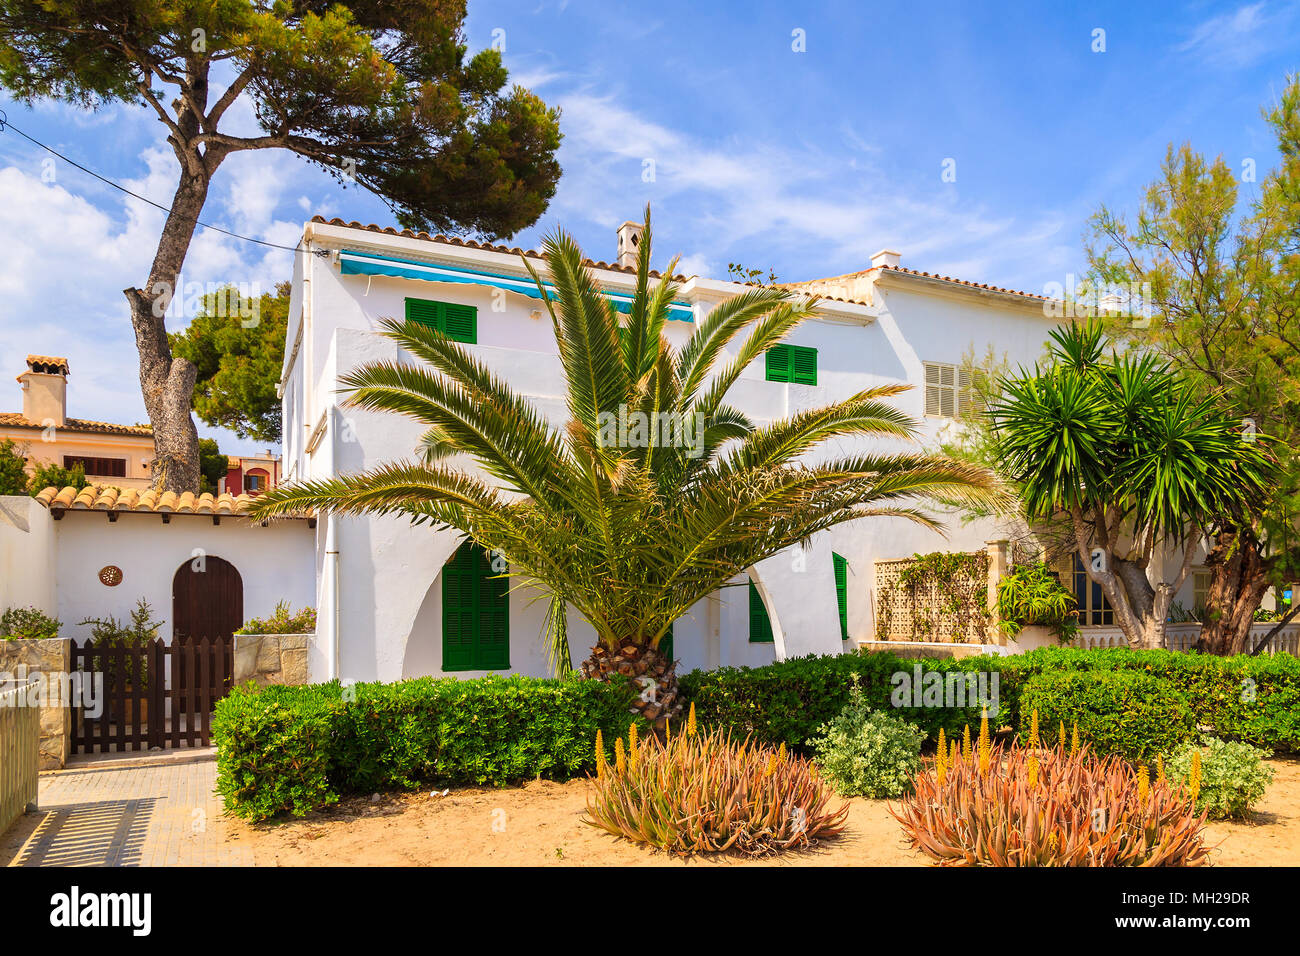 Typical houses in small village on coast of Majorca island near Cala Ratjada, Spain - Stock Image